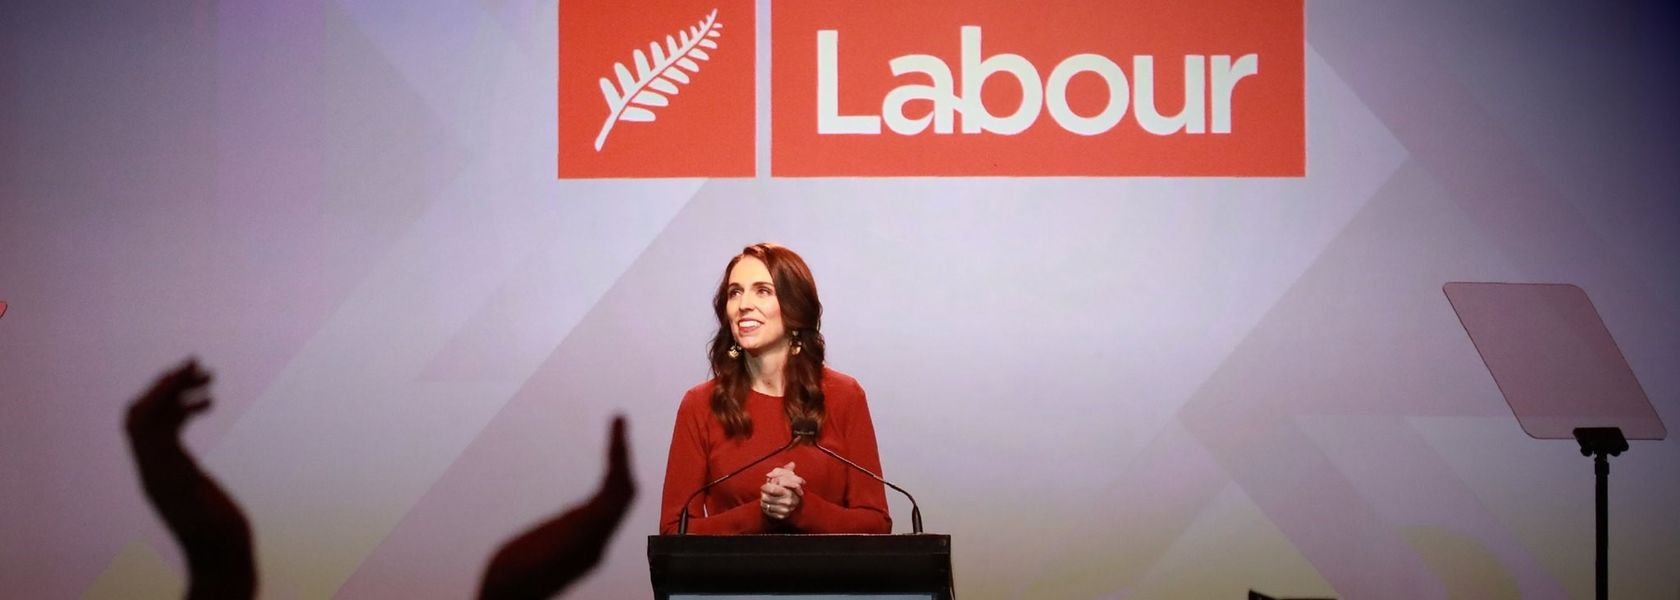 """North Sea of the South"" dreams come crashing down in NZ Labour landslide"